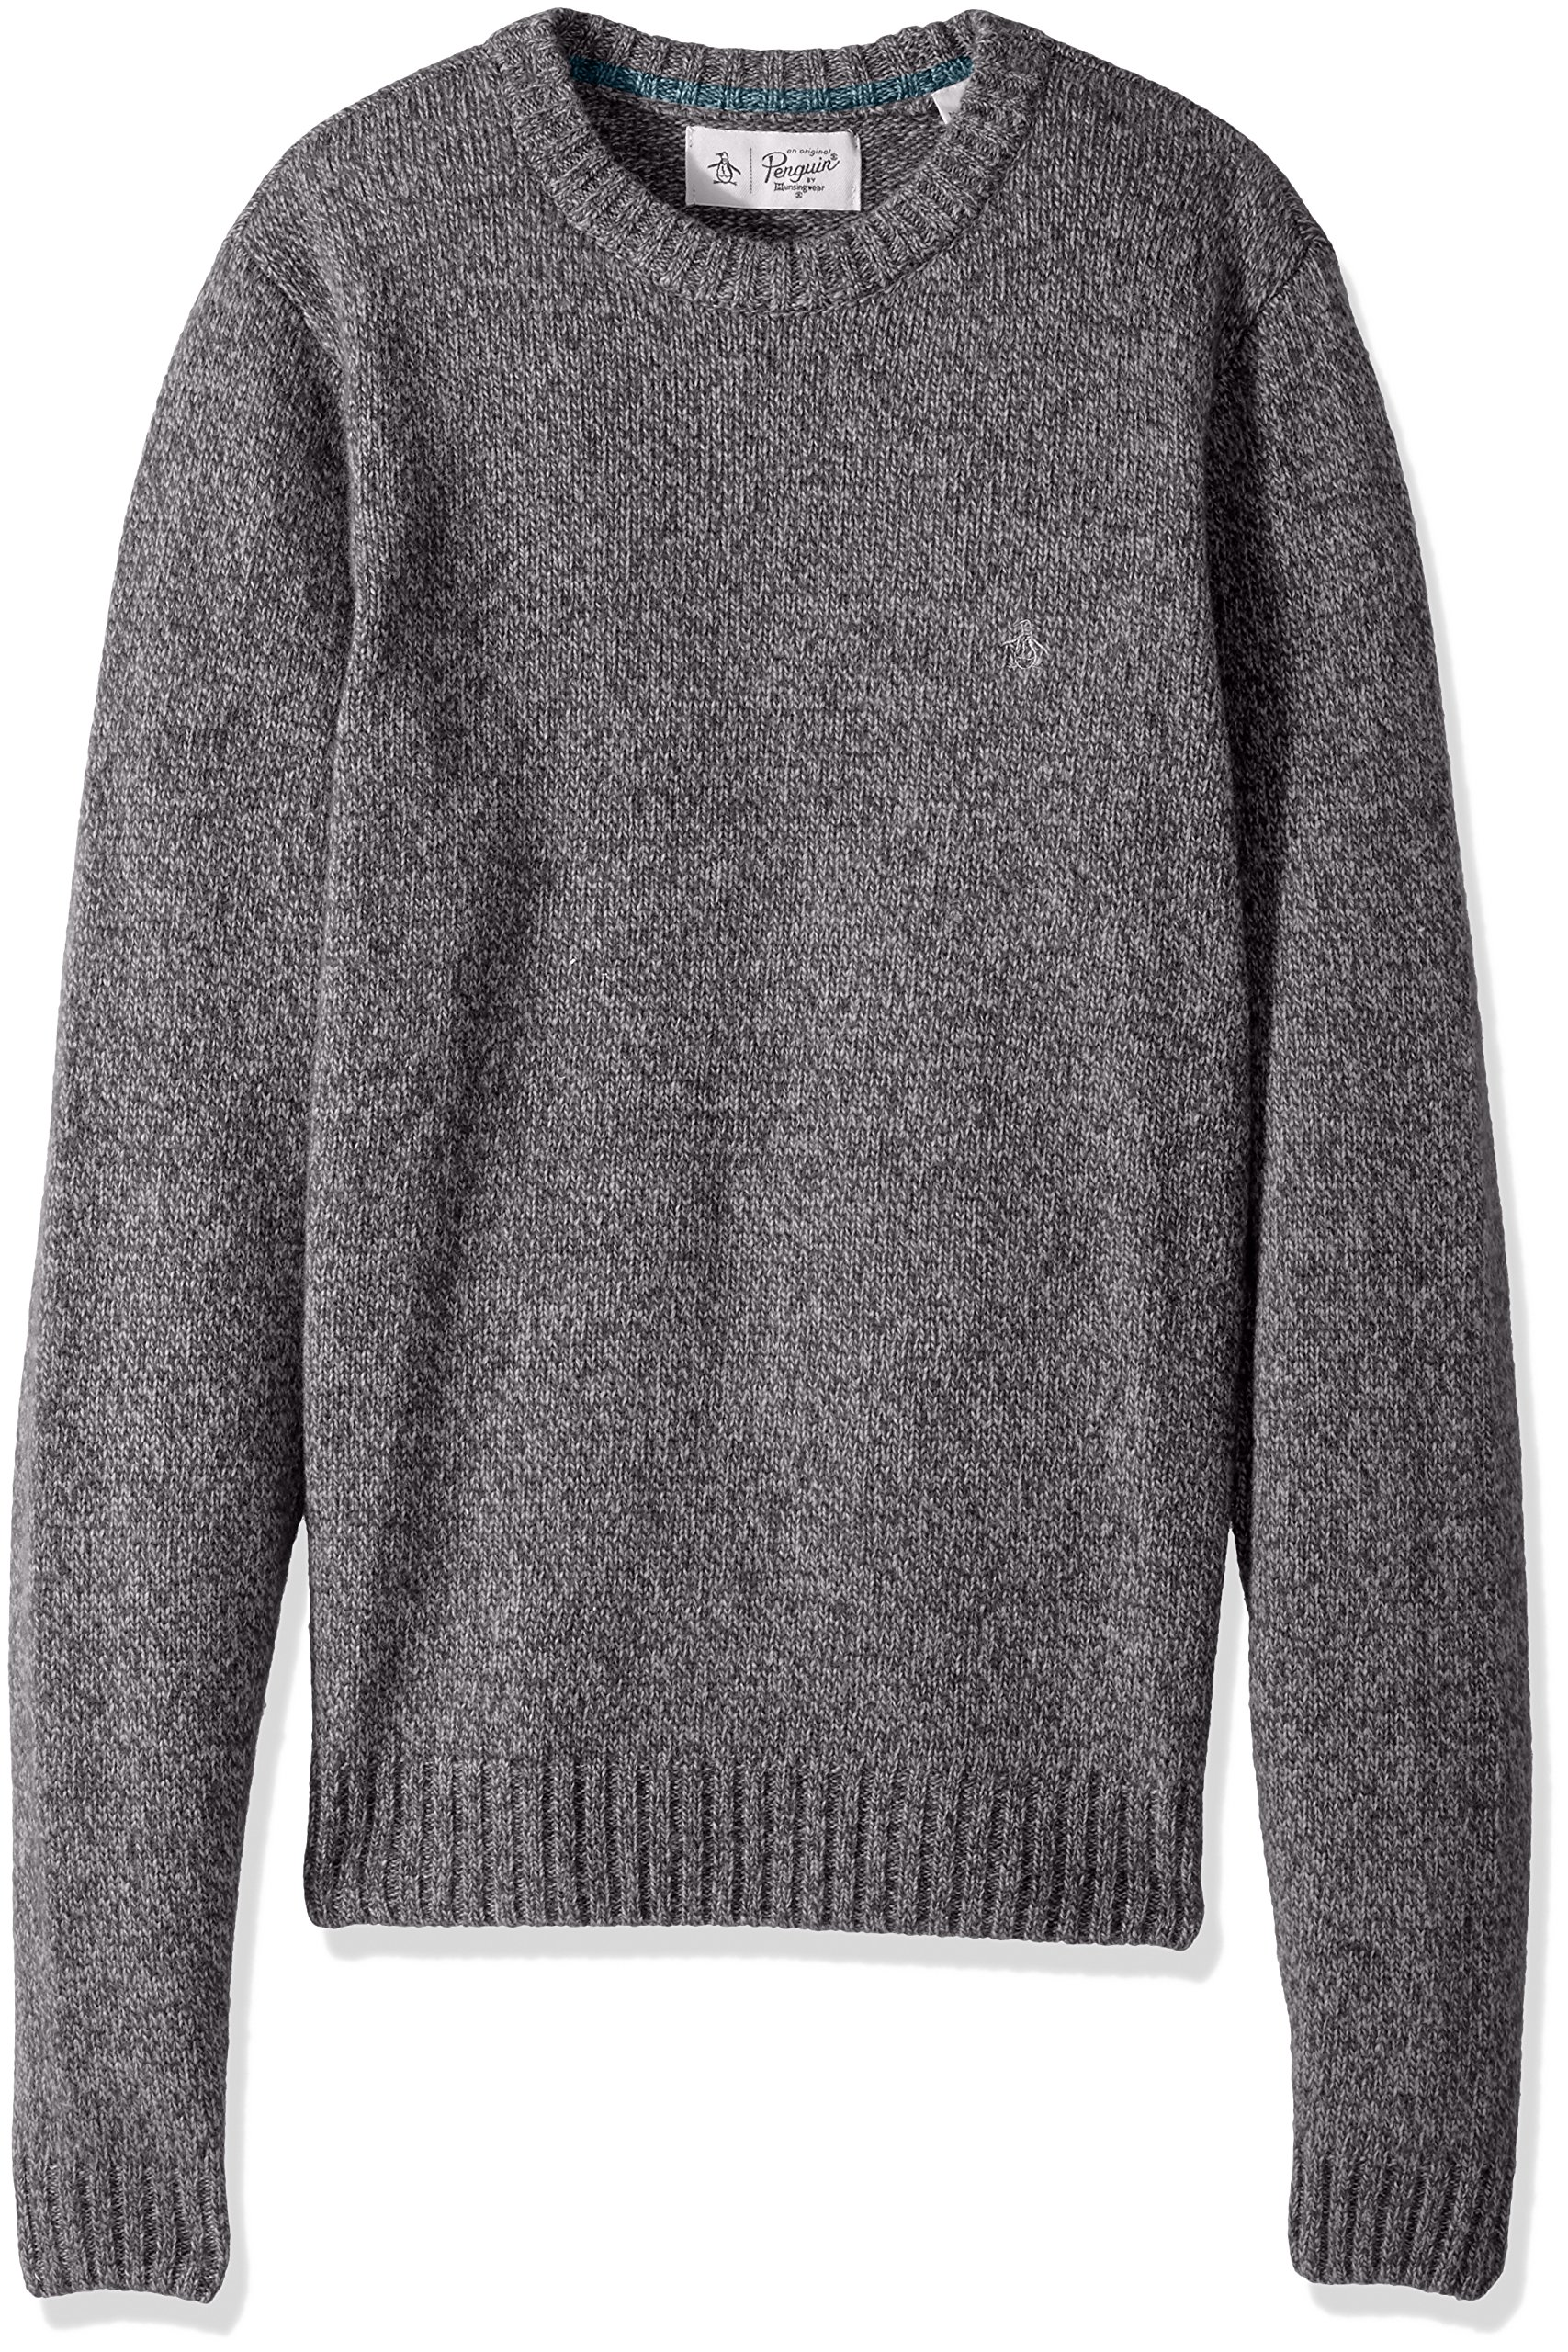 Original Penguin Men's Twisted Yarn Crew Sweater, Steel Gray, Large by Original Penguin